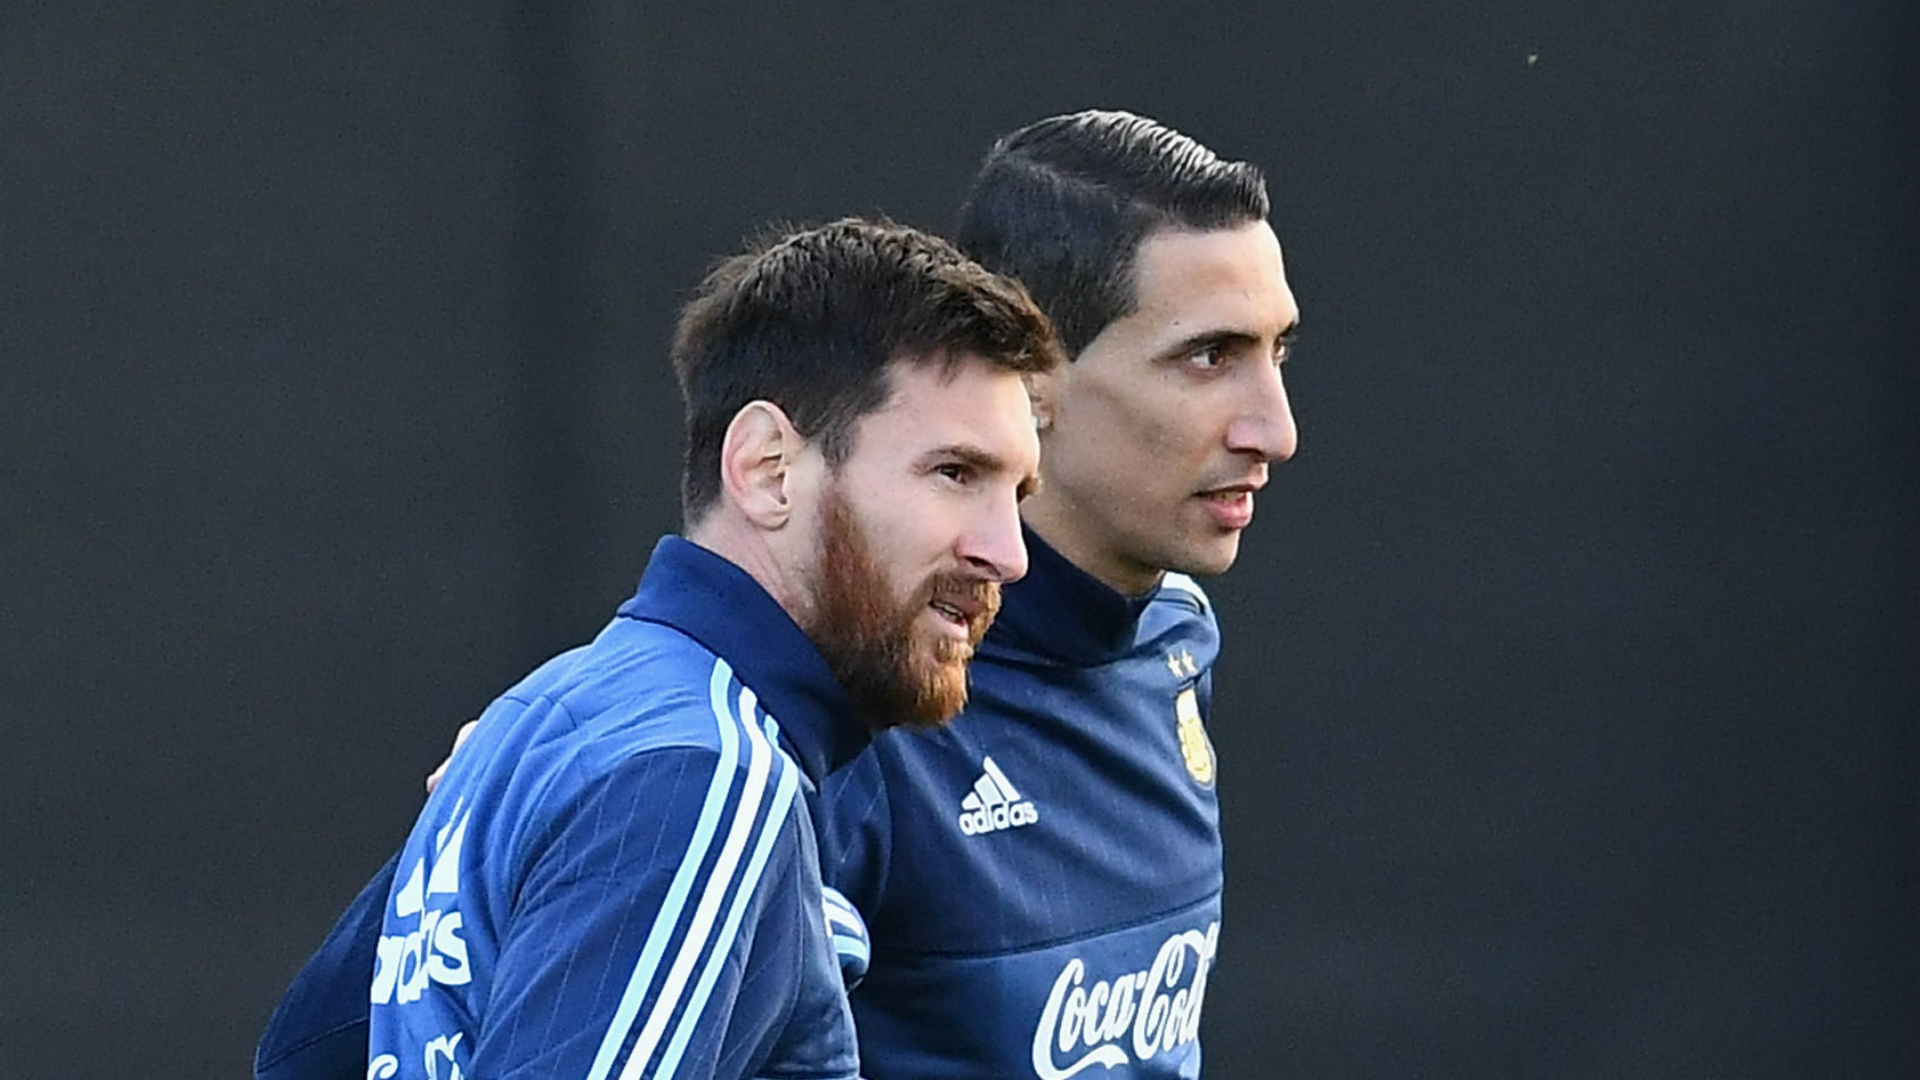 Messi made Argentina squad cry with Copa America speech - Di Maria